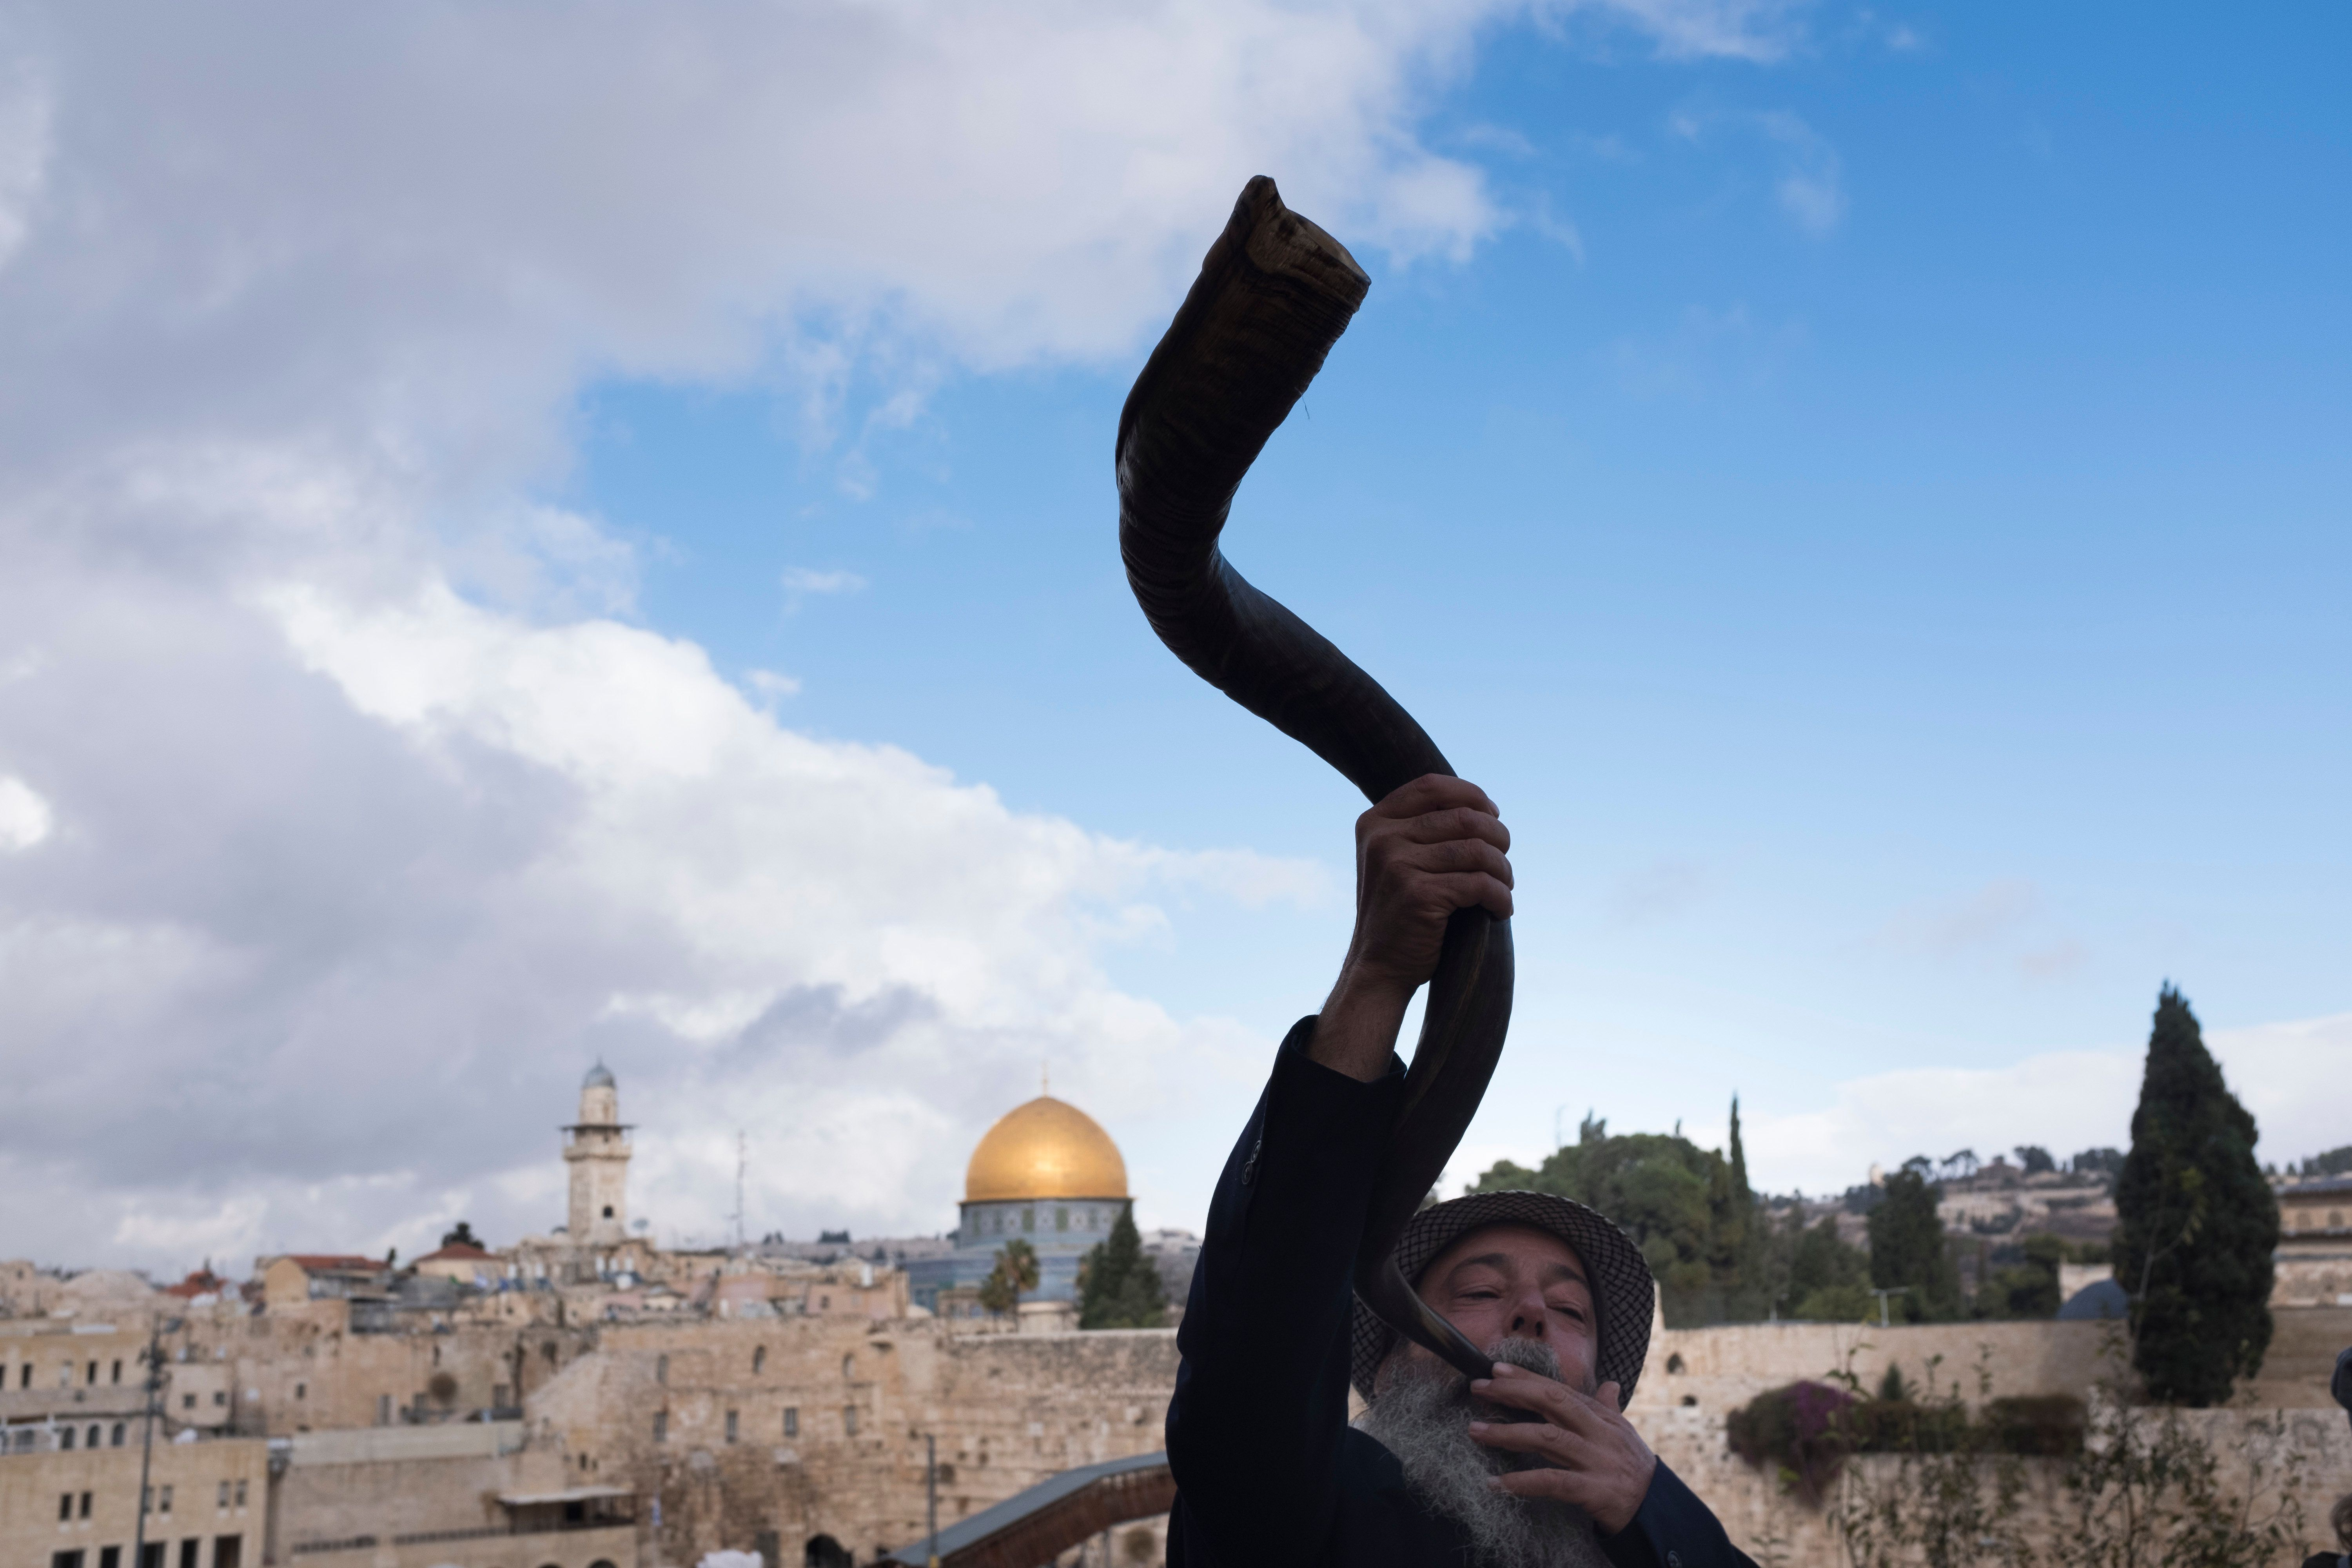 JERUSALEM, ISRAEL - DECEMBER 06: (ISRAEL OUT)  An Ultra Orthodox Jewish man blows the shofar (ram's horn) with the golden Dome of the Rock Islamic shrine behind on December 6, 2017 in Jerusalem, Israel. U.S. President Donald Trump will announce his recognition of Jerusalem as Israel's capital on Wednesday.